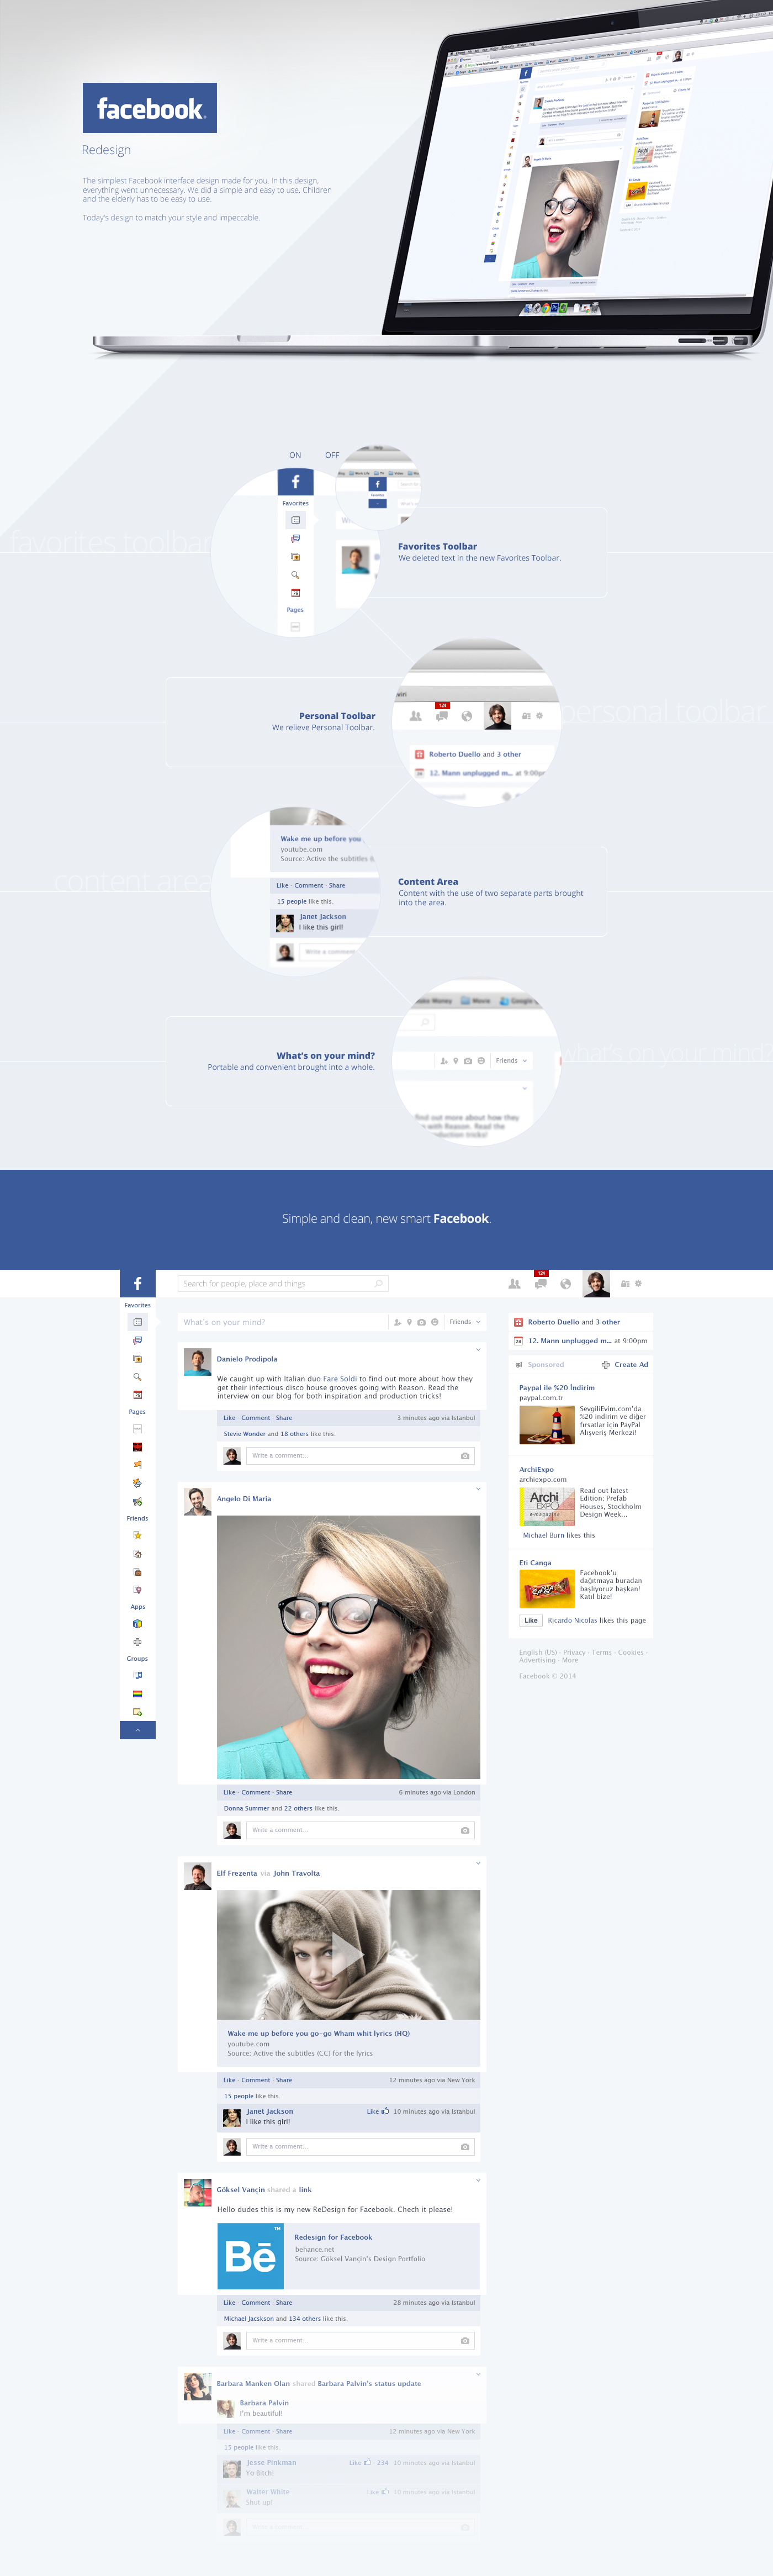 social media facebook timeline wall friend relationship girl boy Like share comment content dashboard flat